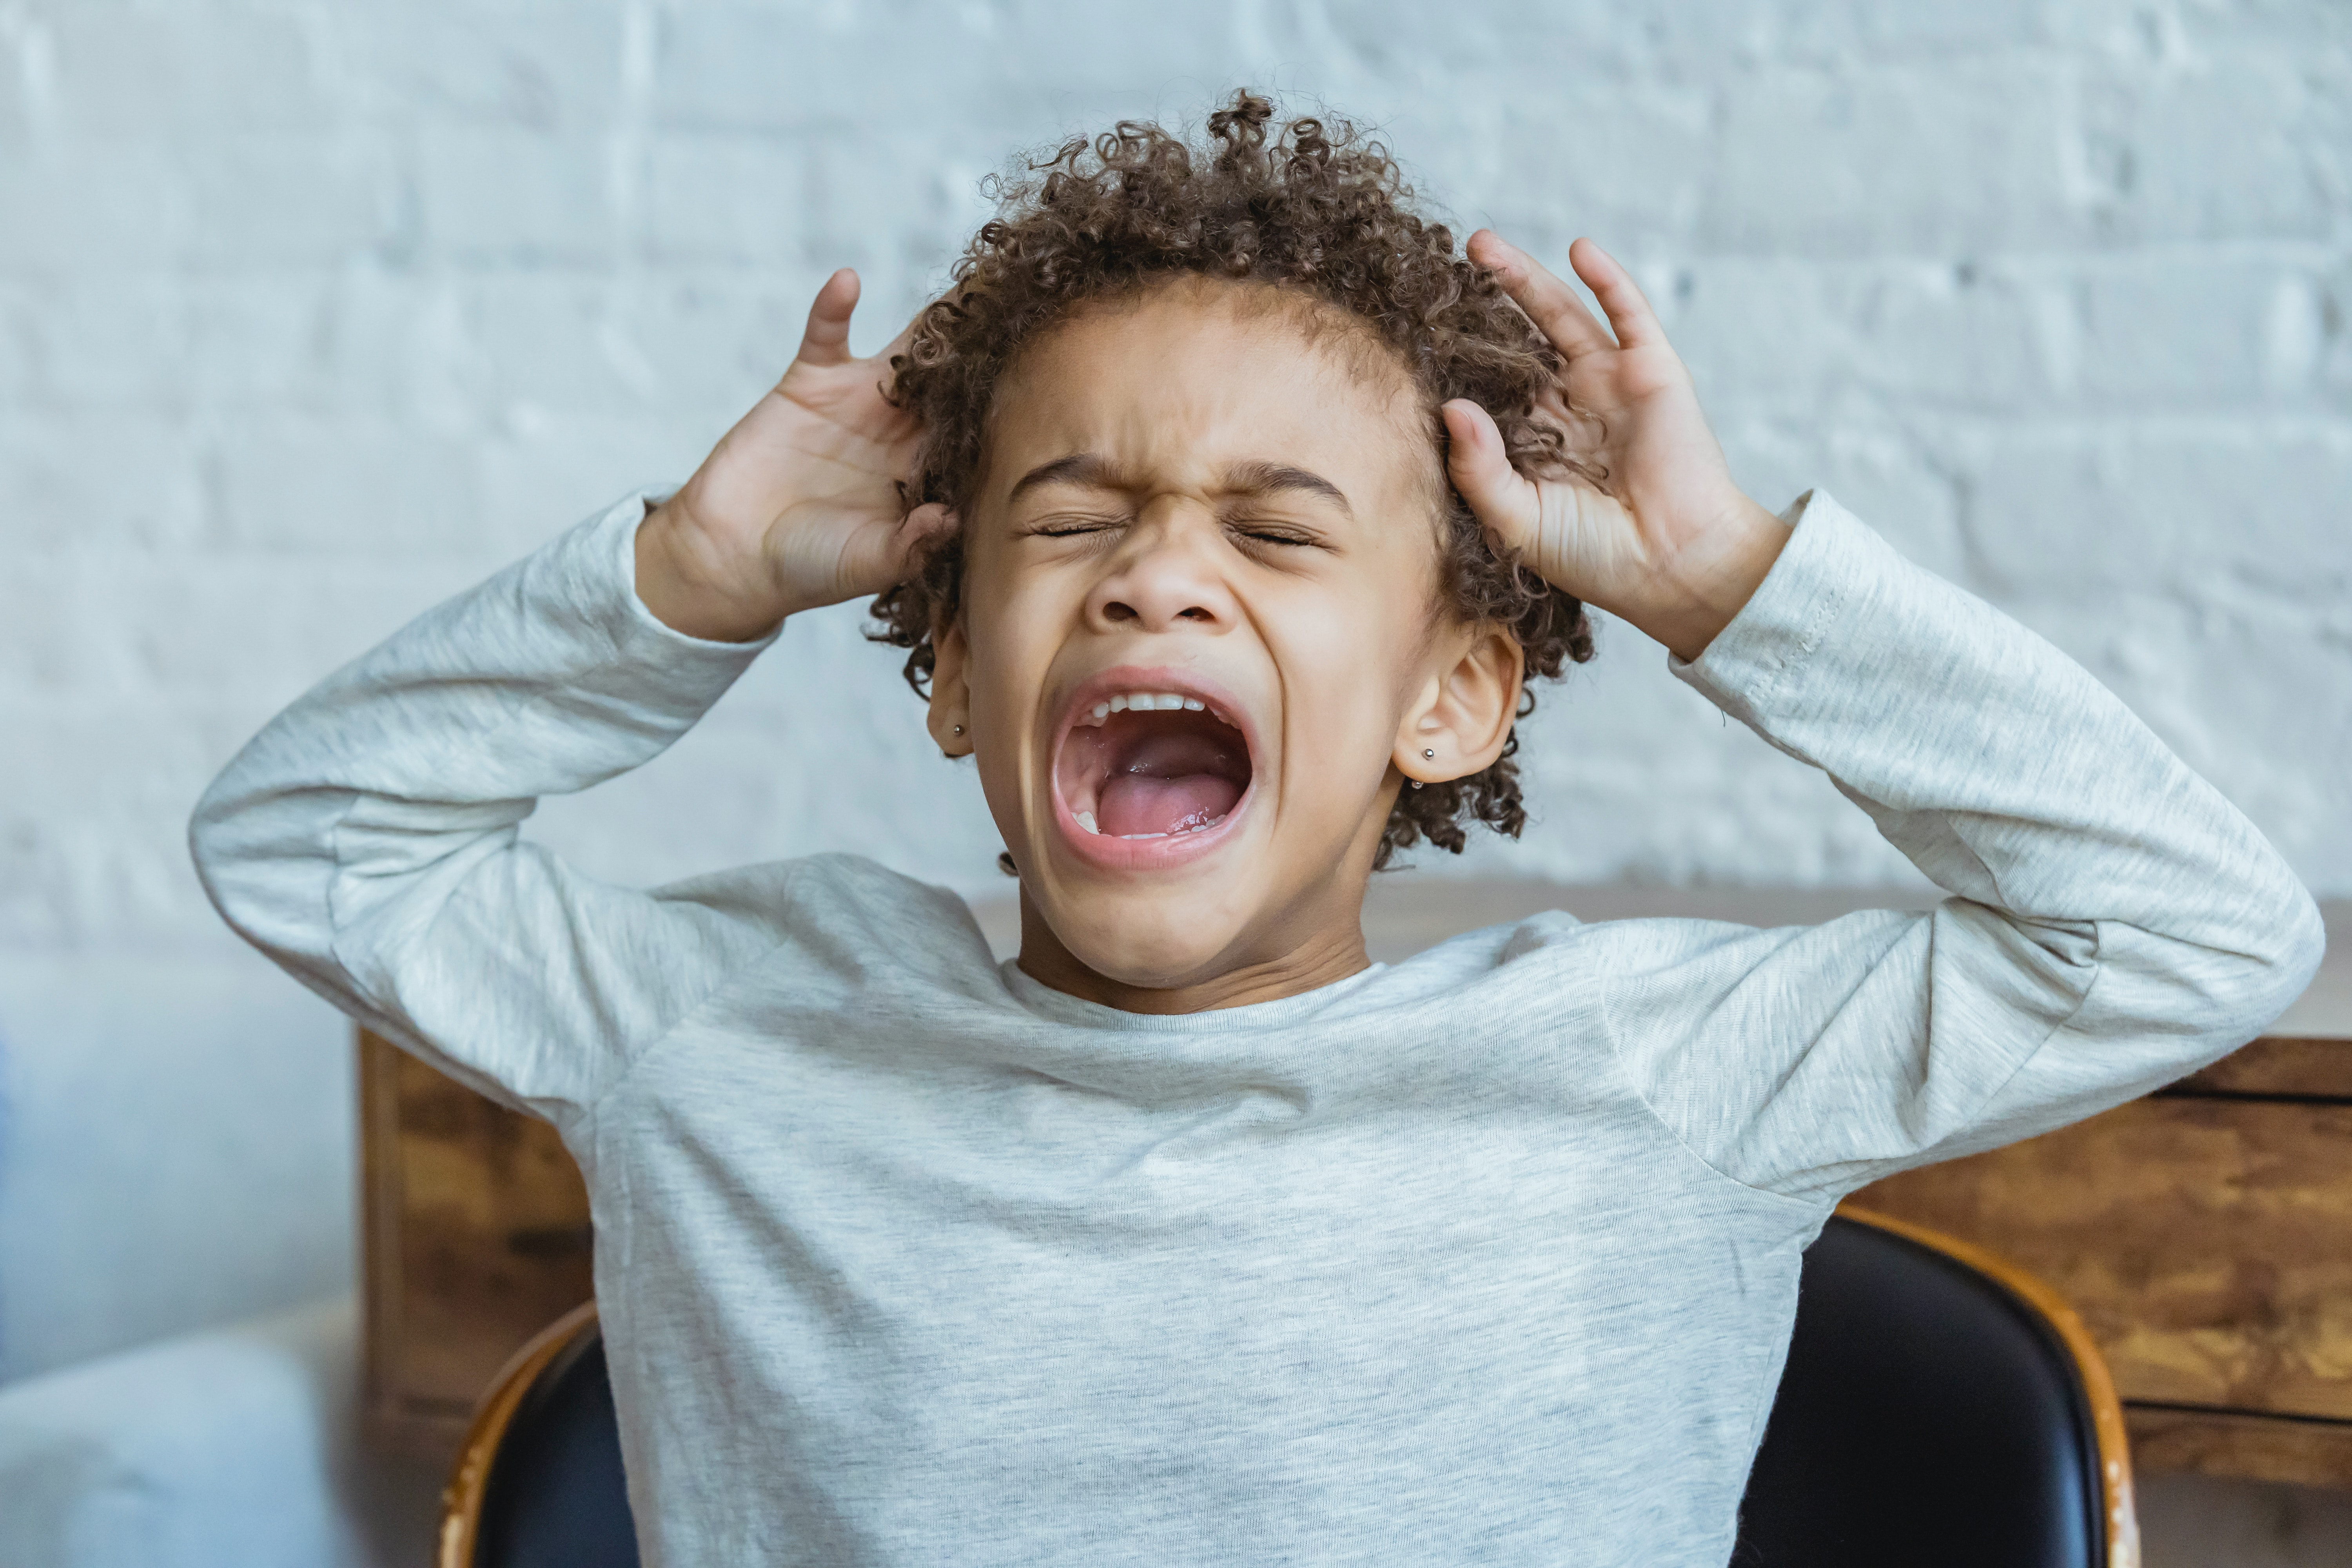 5-ways-to-handle-a-defiant-child-as-we-return-back-to-in-person-school